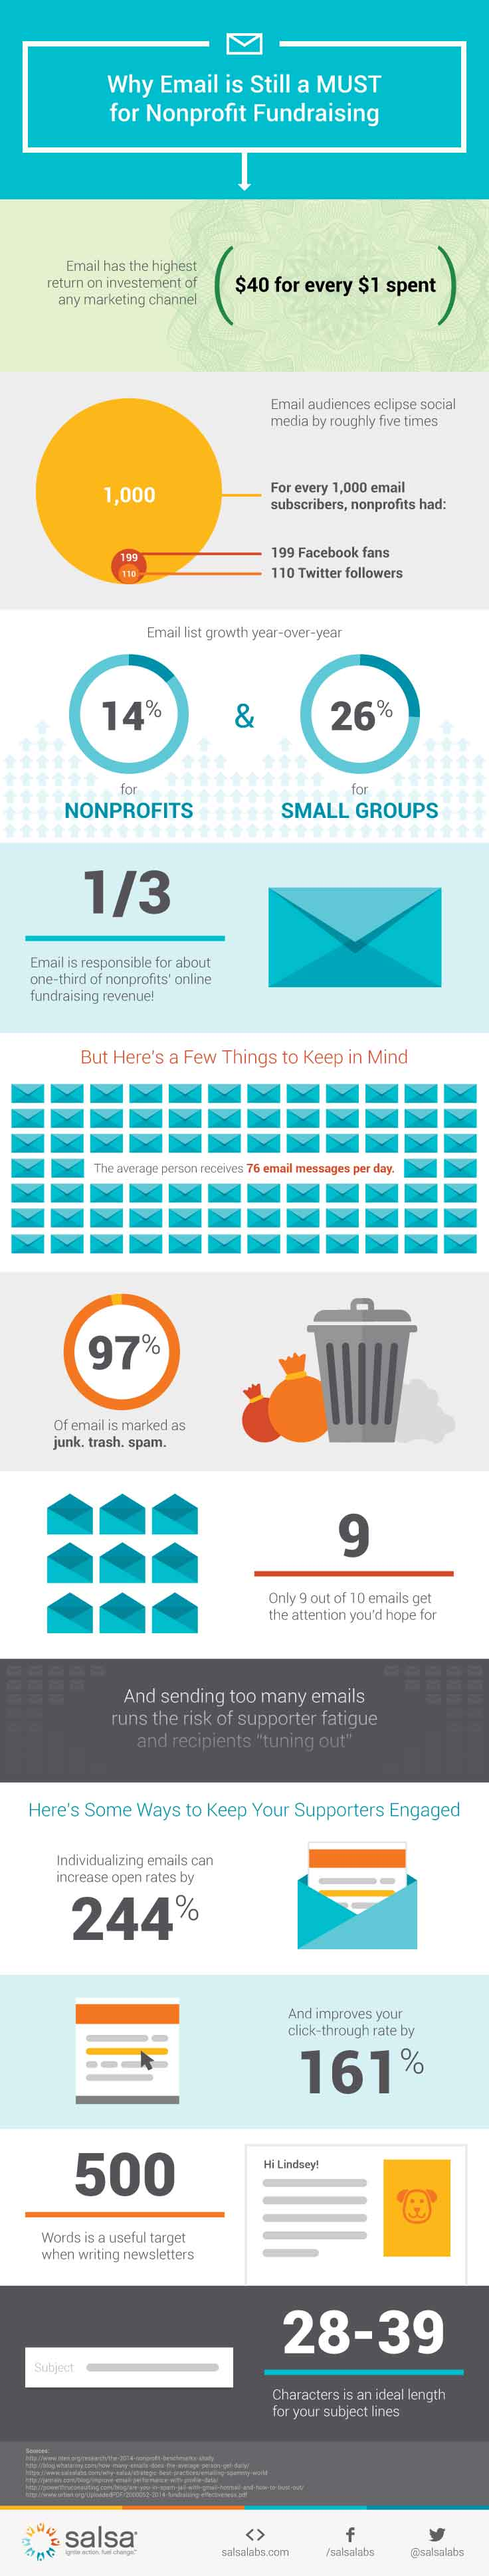 Email Marketing for Nonprofits Infographic